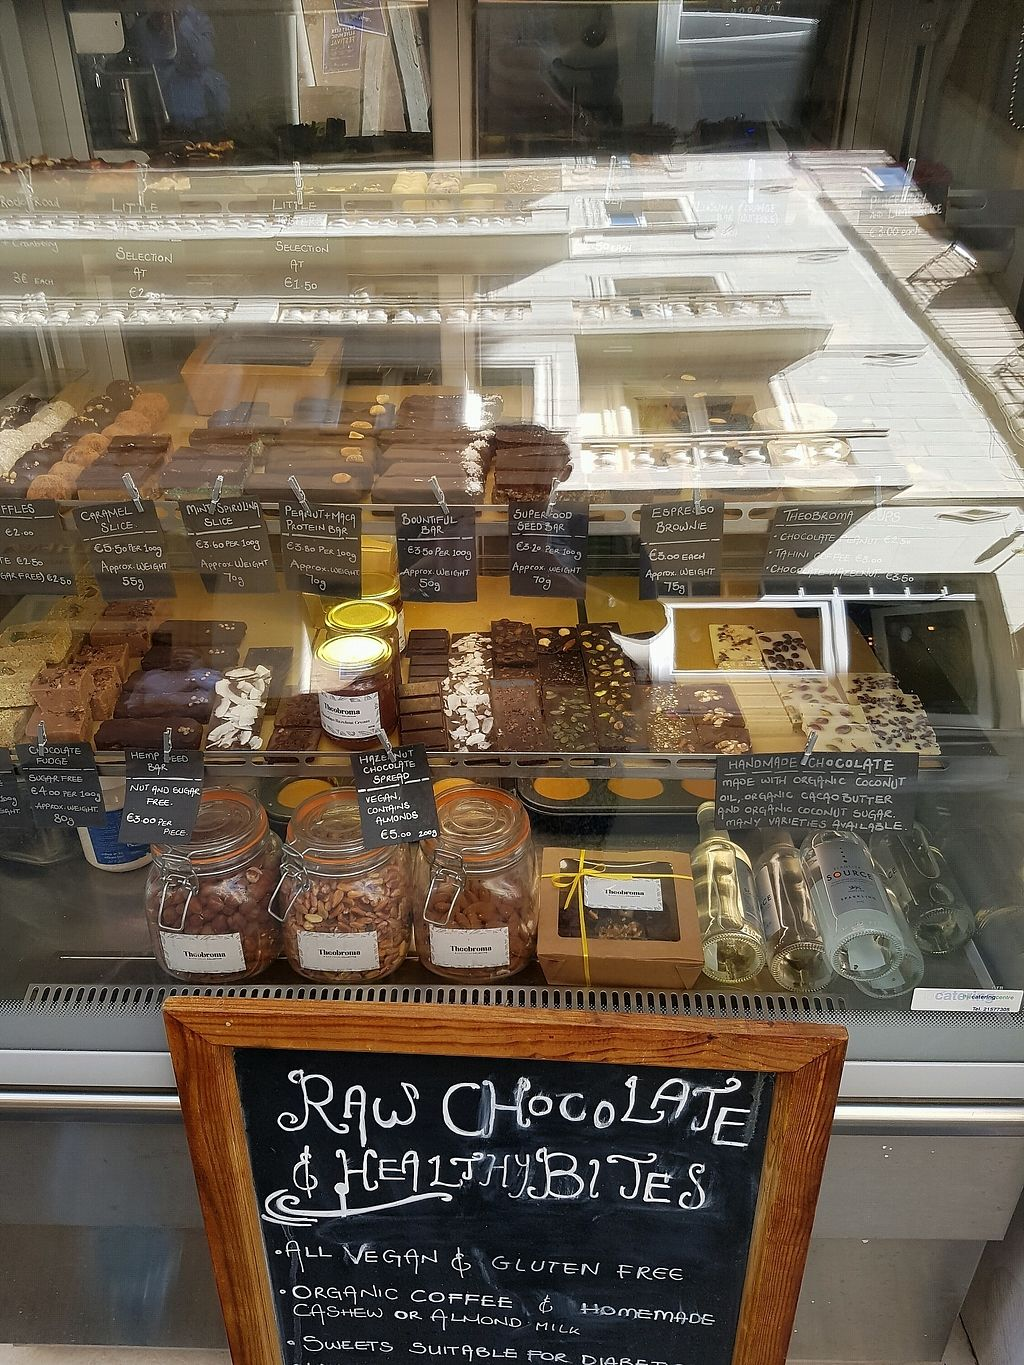 """Photo of Theobroma  by <a href=""""/members/profile/Rachaelm"""">Rachaelm</a> <br/>Theobroma display <br/> February 15, 2018  - <a href='/contact/abuse/image/74106/359596'>Report</a>"""